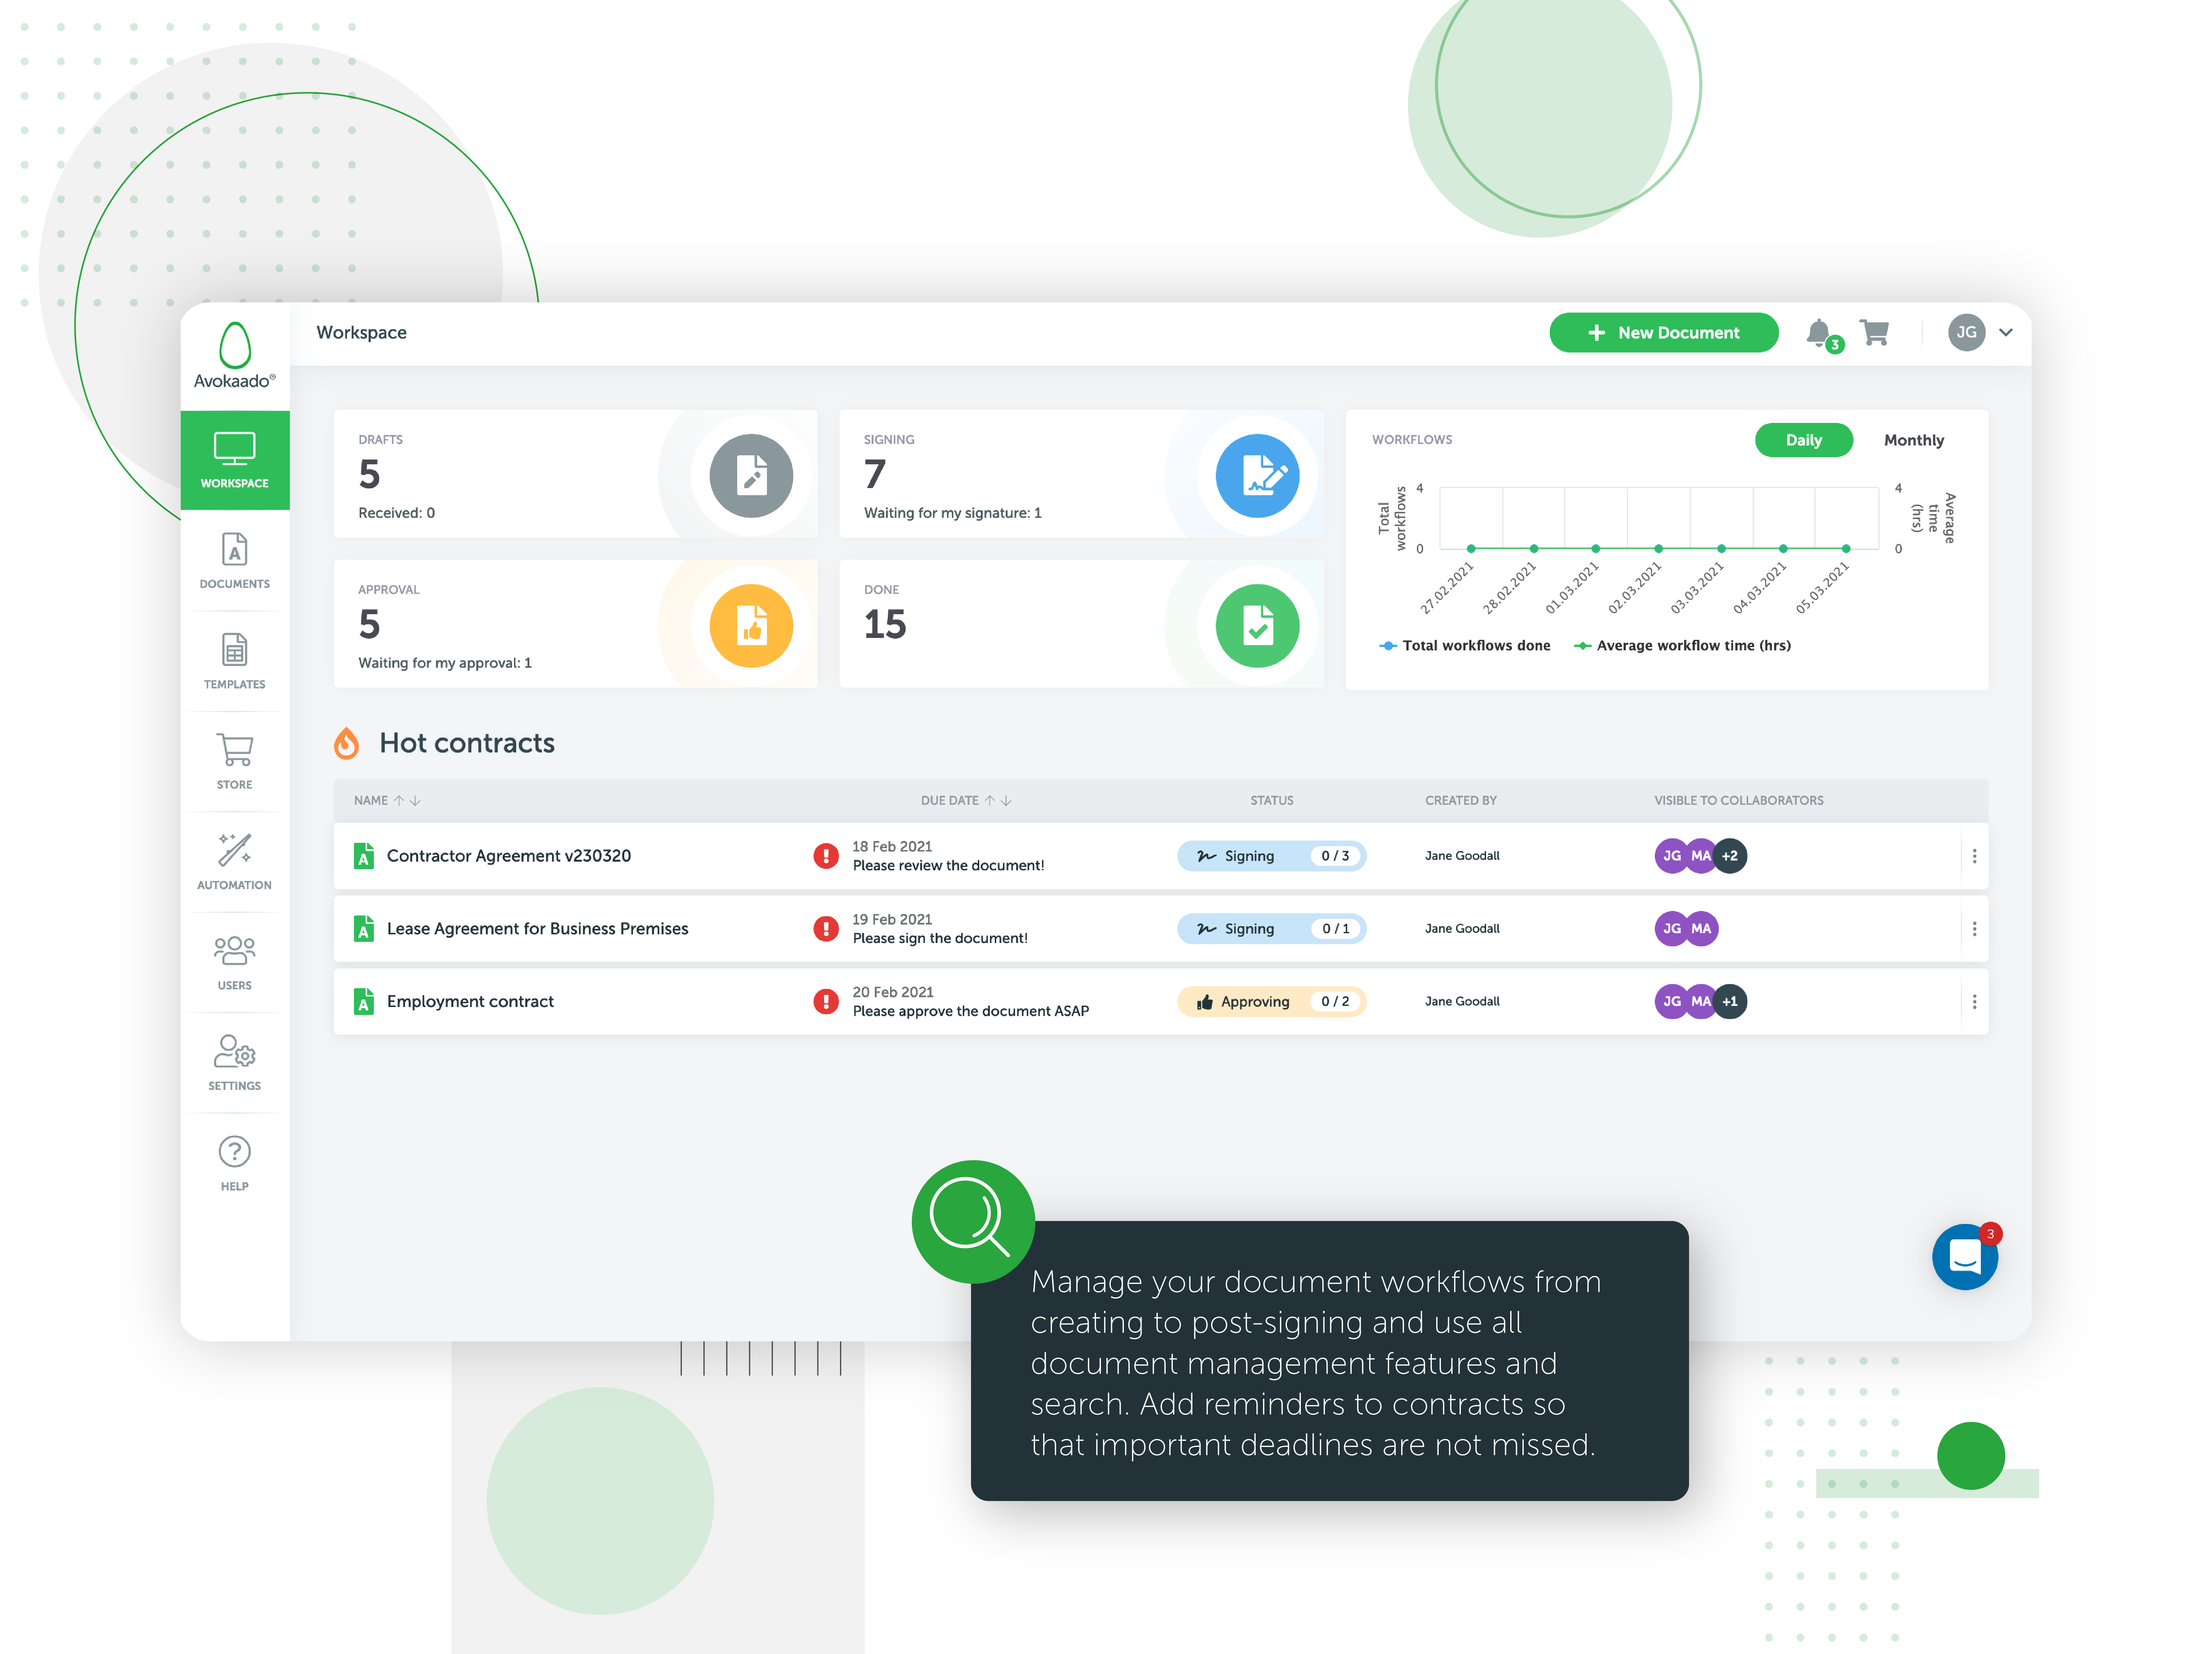 Avokaado is an all-in-one digital workspace for contract lifecycle management platform that helps legal and business teams manage, create and collaborate on documents from one single platform at every stage of the document lifecycle.